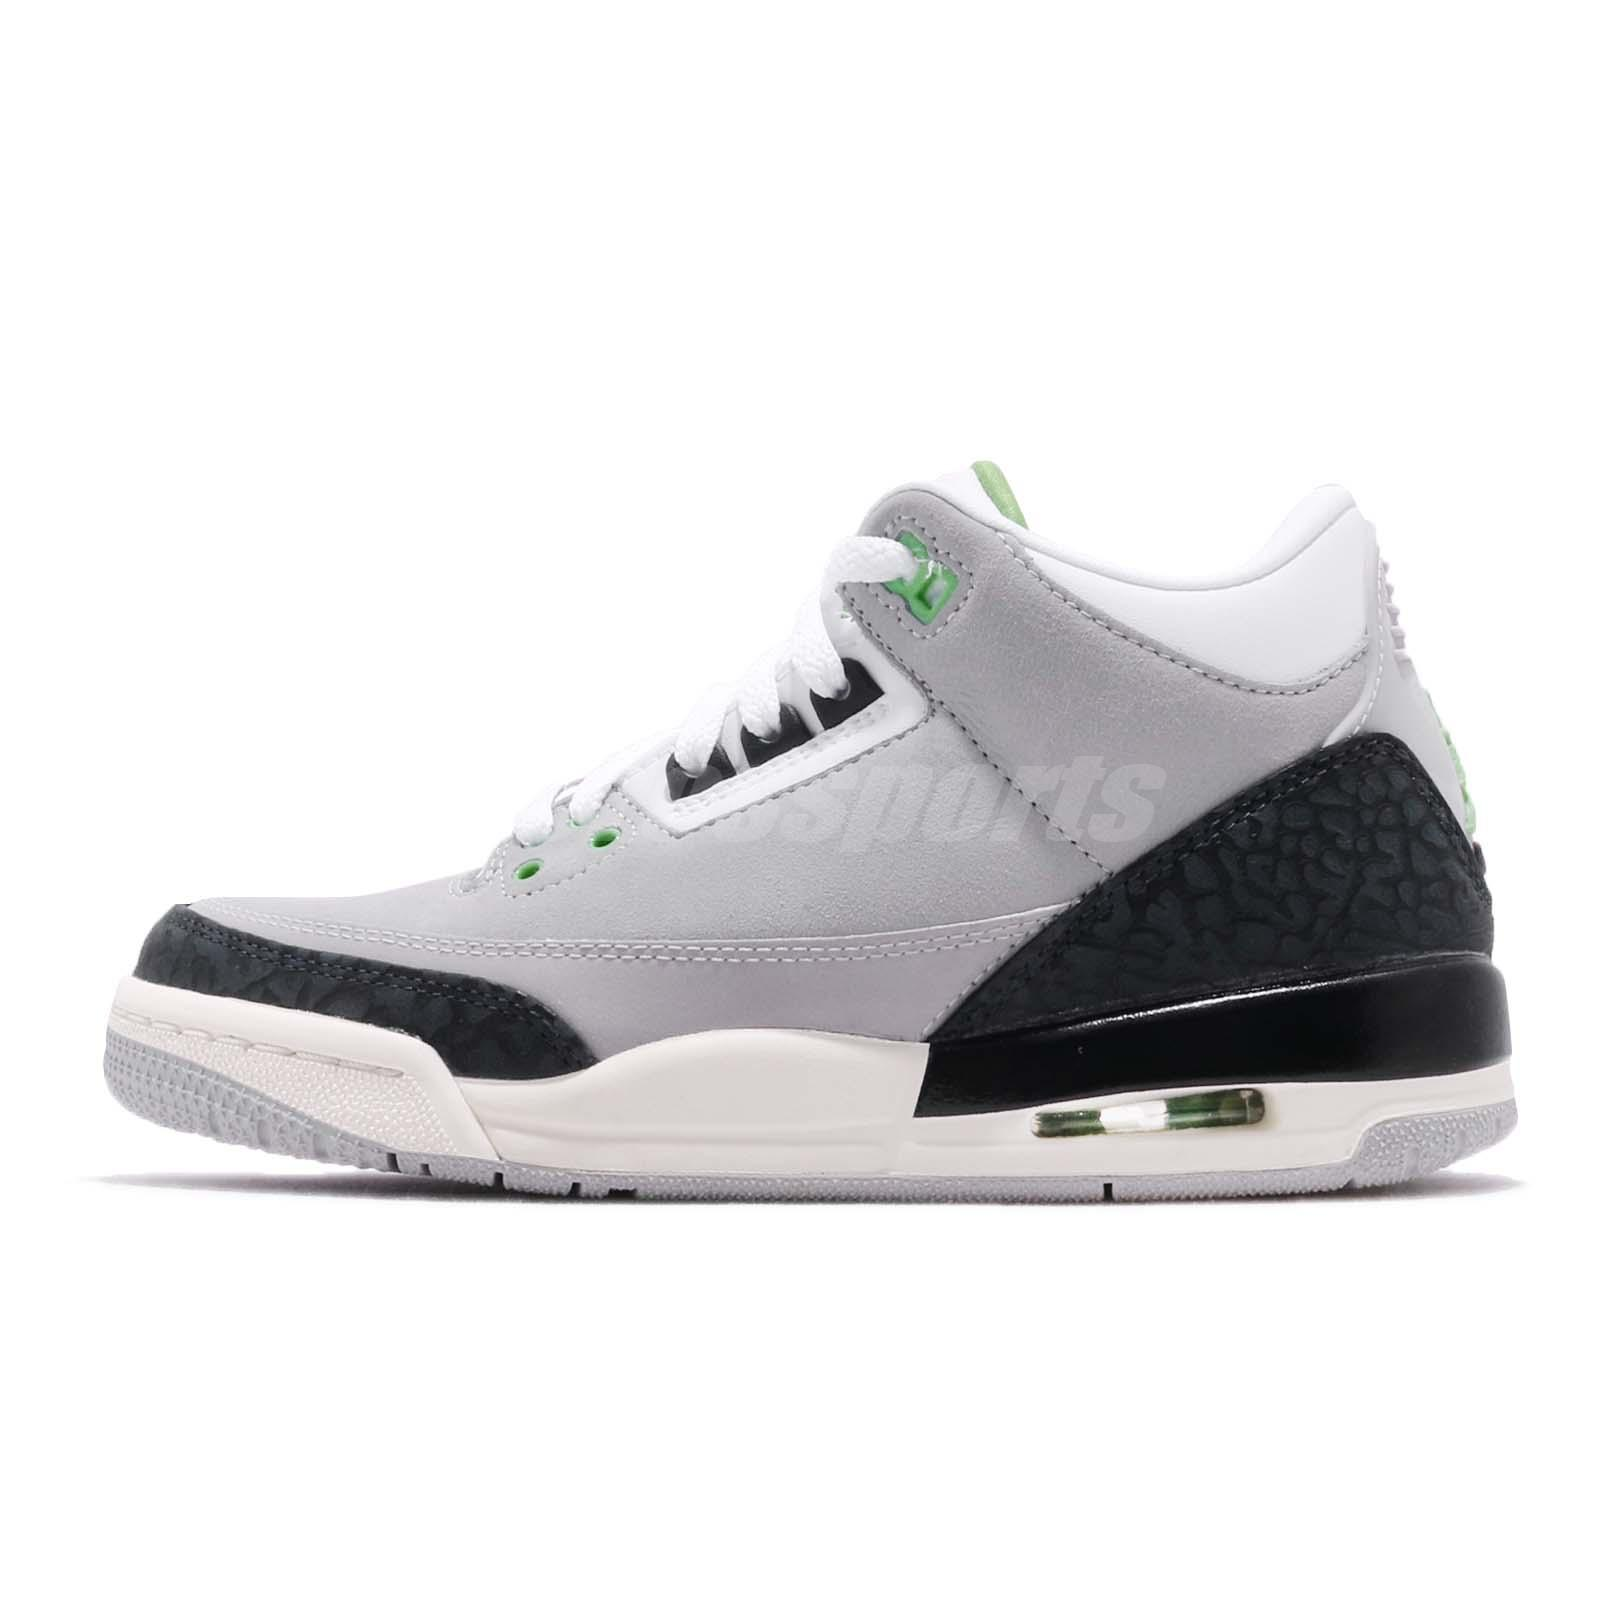 more photos df704 c2fc8 Nike Air Jordan 3 Retro BG Chlorophyll Tinker Green Kid Women Shoes  398614-006